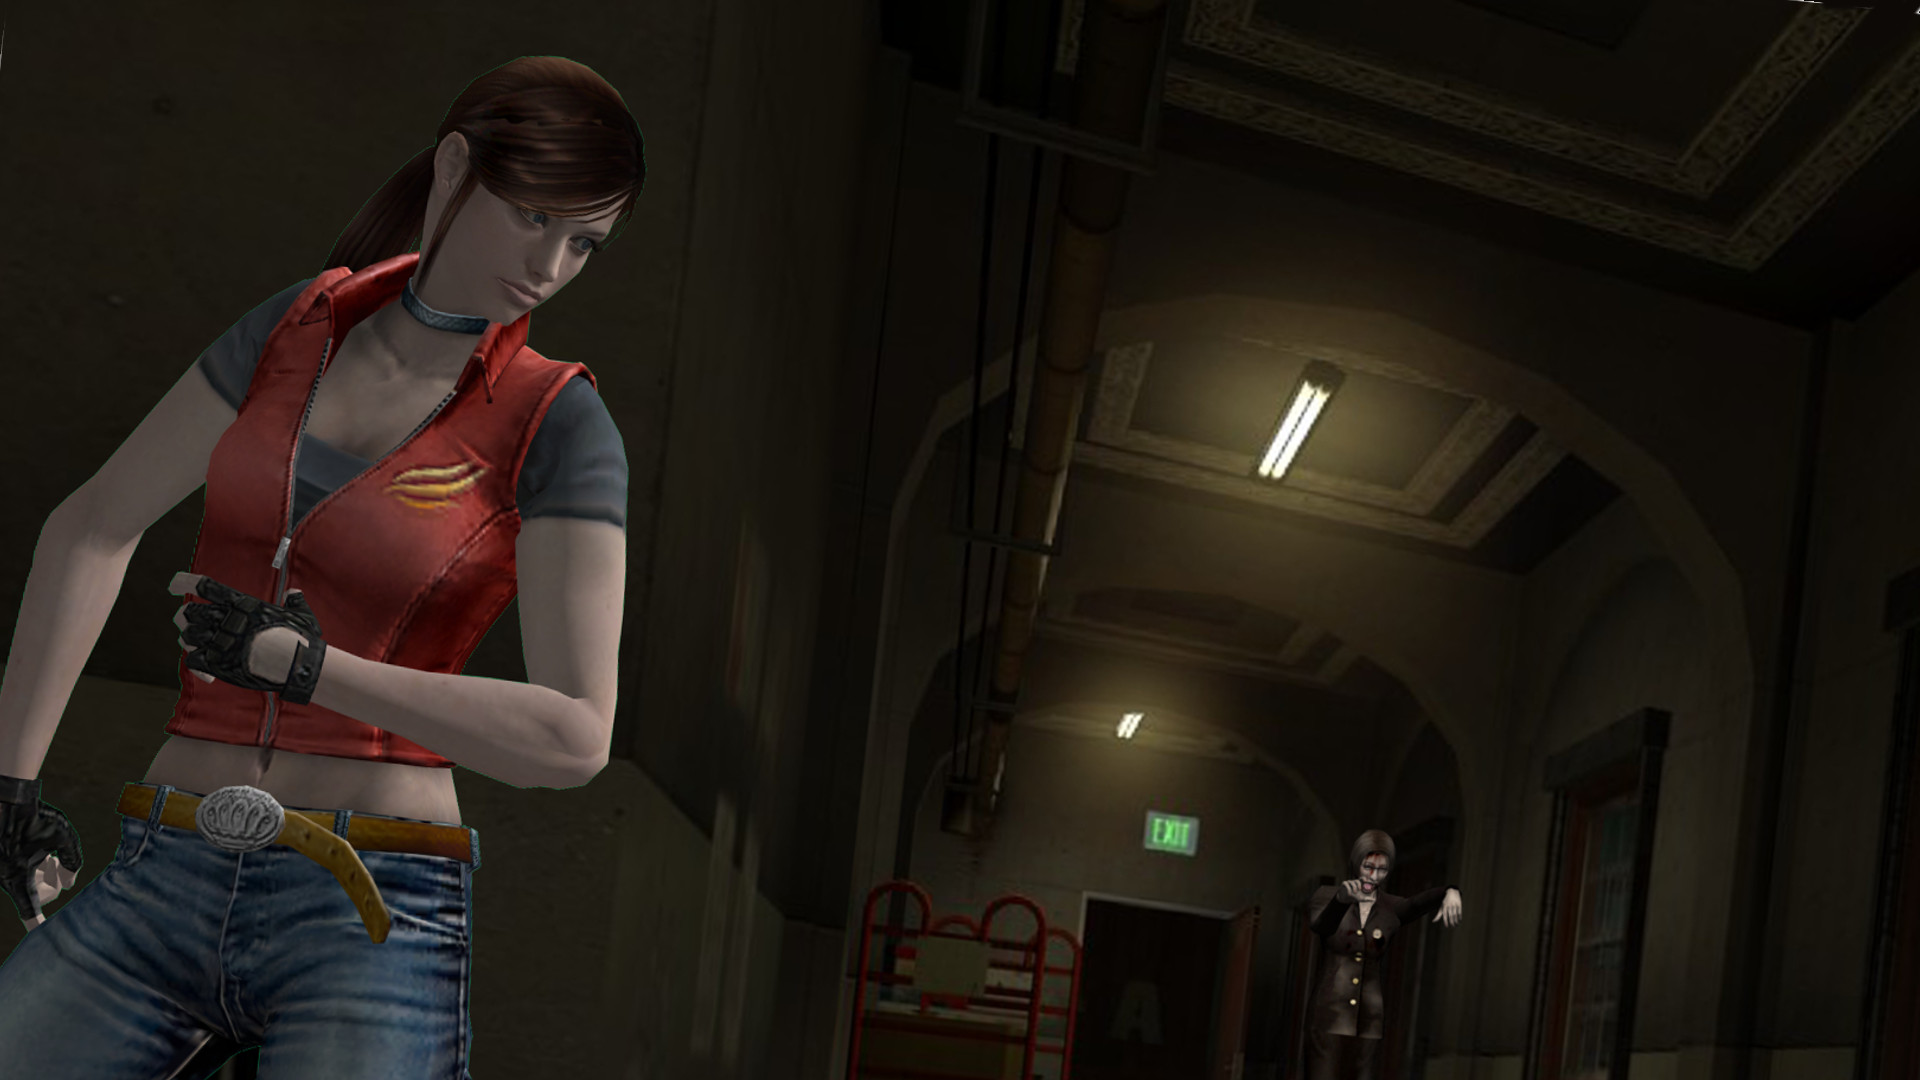 Res: 1920x1080, Resident Evil Claire Redfield Wallpaper